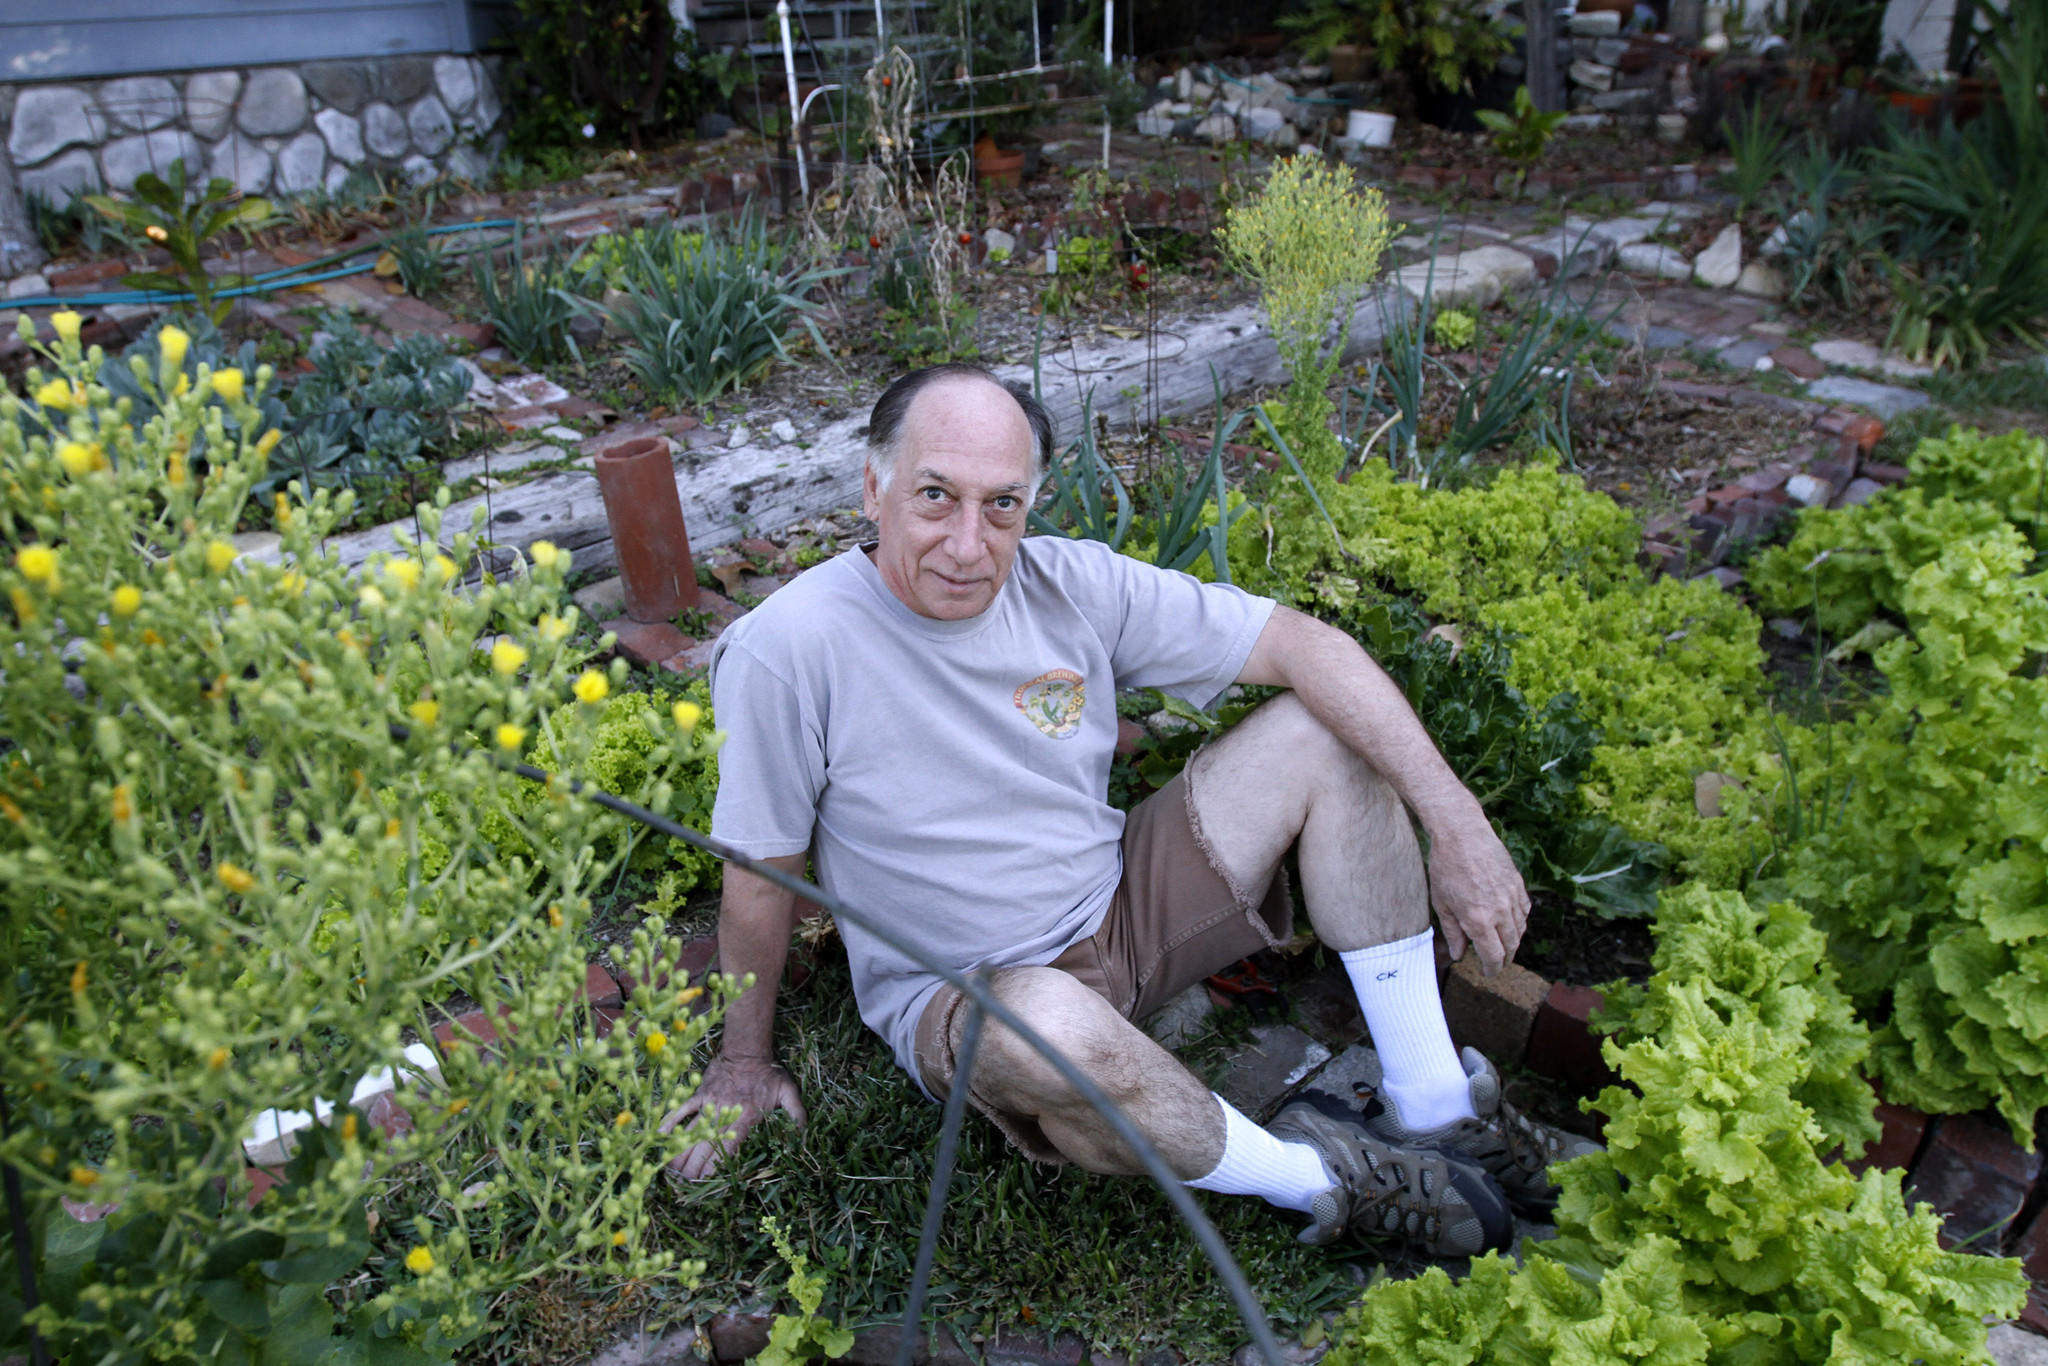 Jim Luna has had a garden in his front yard since he moved into his present home, some 40 years ago, in La Crescenta on Wednesday, March 12, 2014. Luna, who was a ballet dancer and computer tech, lets some of his fruits and vegetables go seed and then spreads that seed around his garden for the next year's crop.